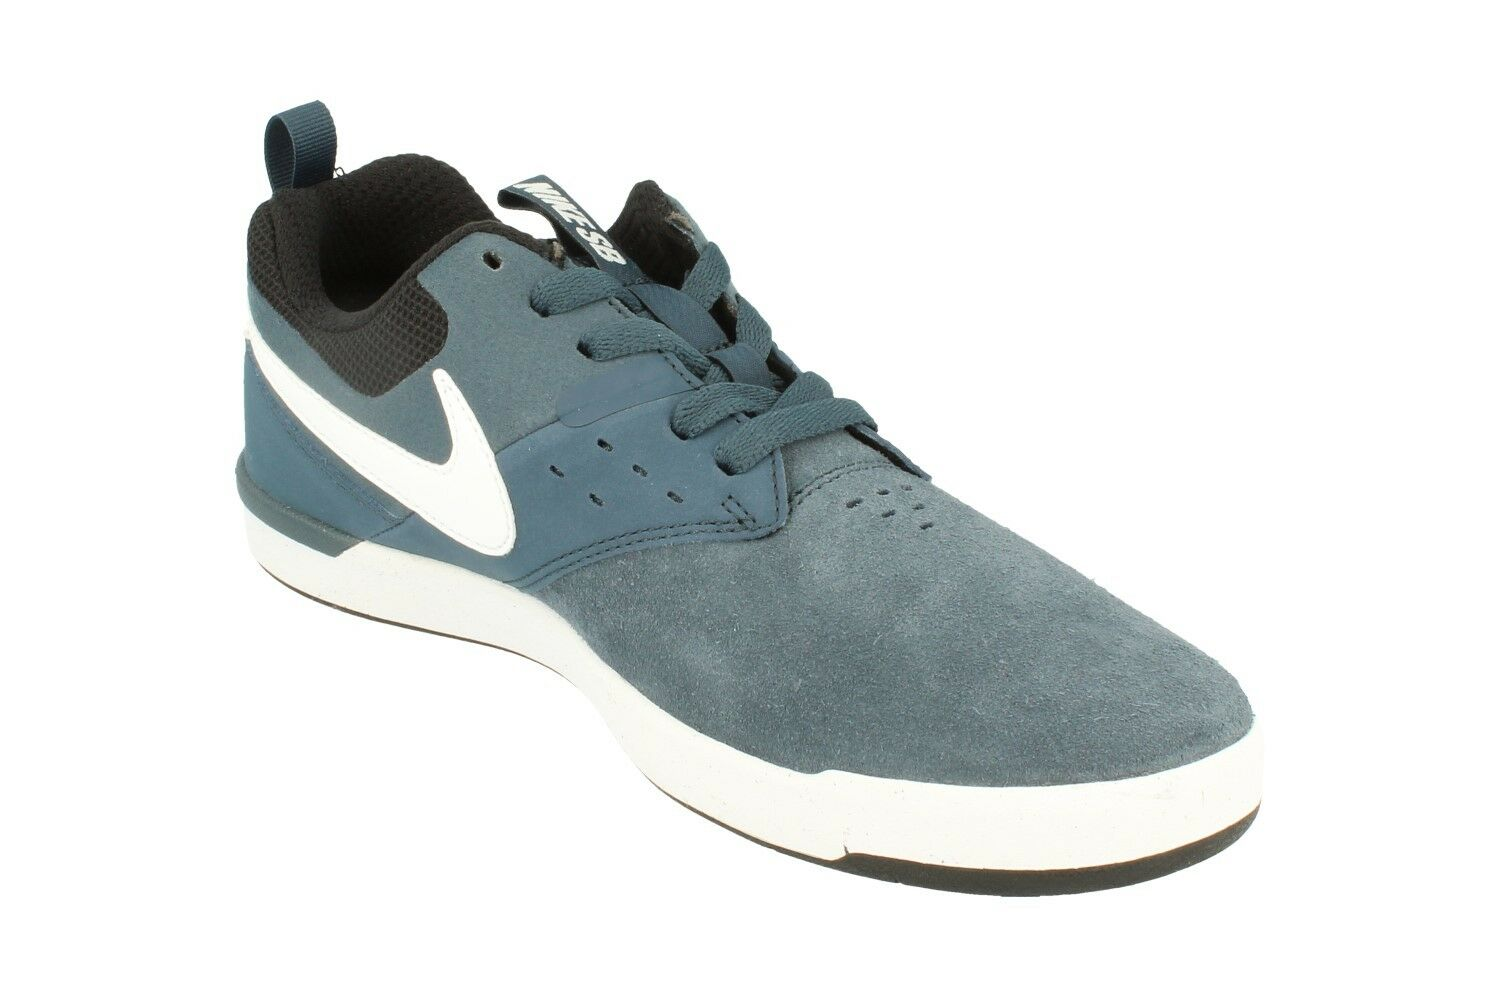 Nike Sb Zoom Ejecta homme Trainers 749752 749752 749752 Baskets chaussures 410 bdbbc3